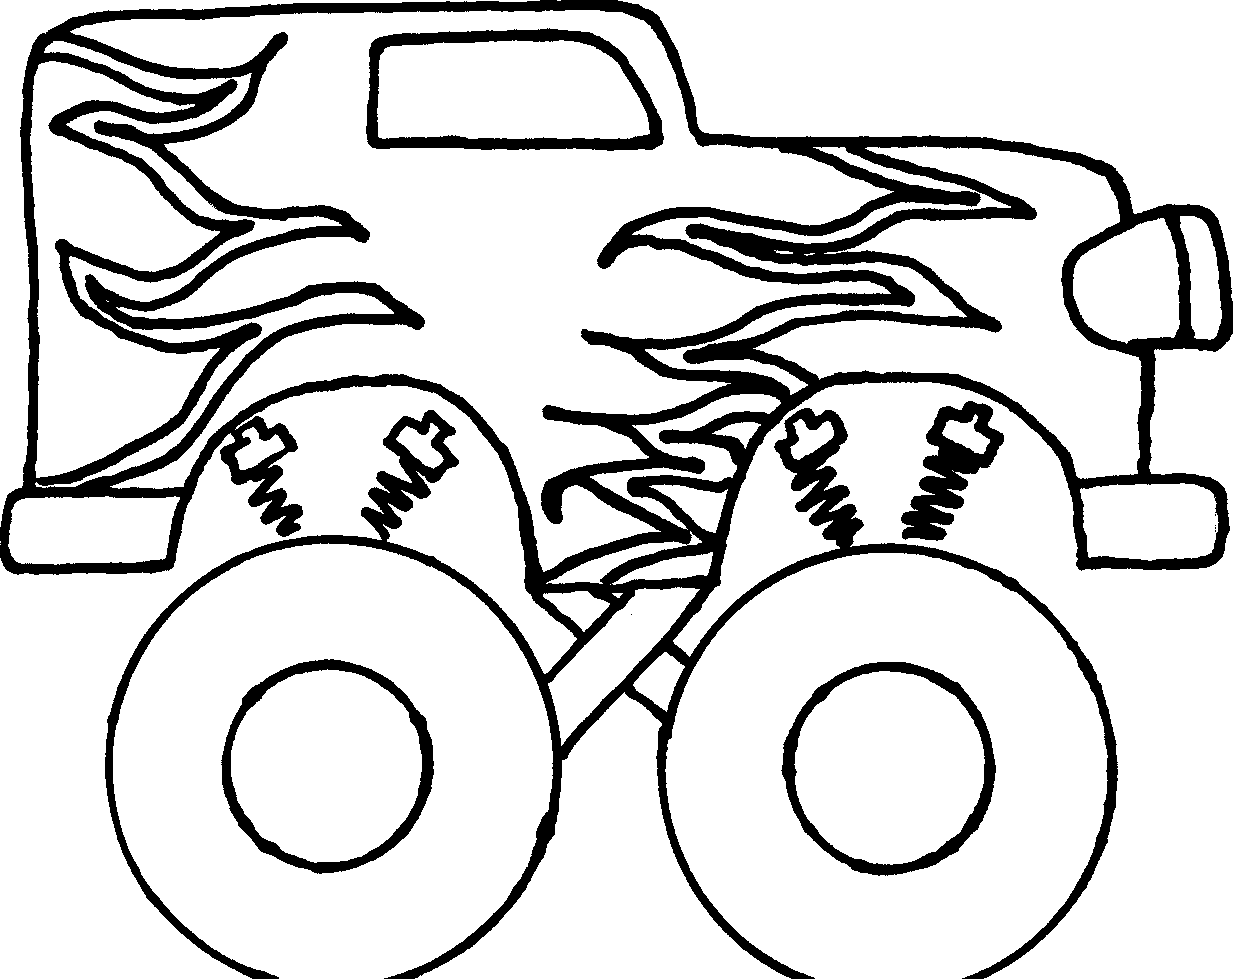 1233x979 Truck Black And White Monster Truck Clipart Black And White Free